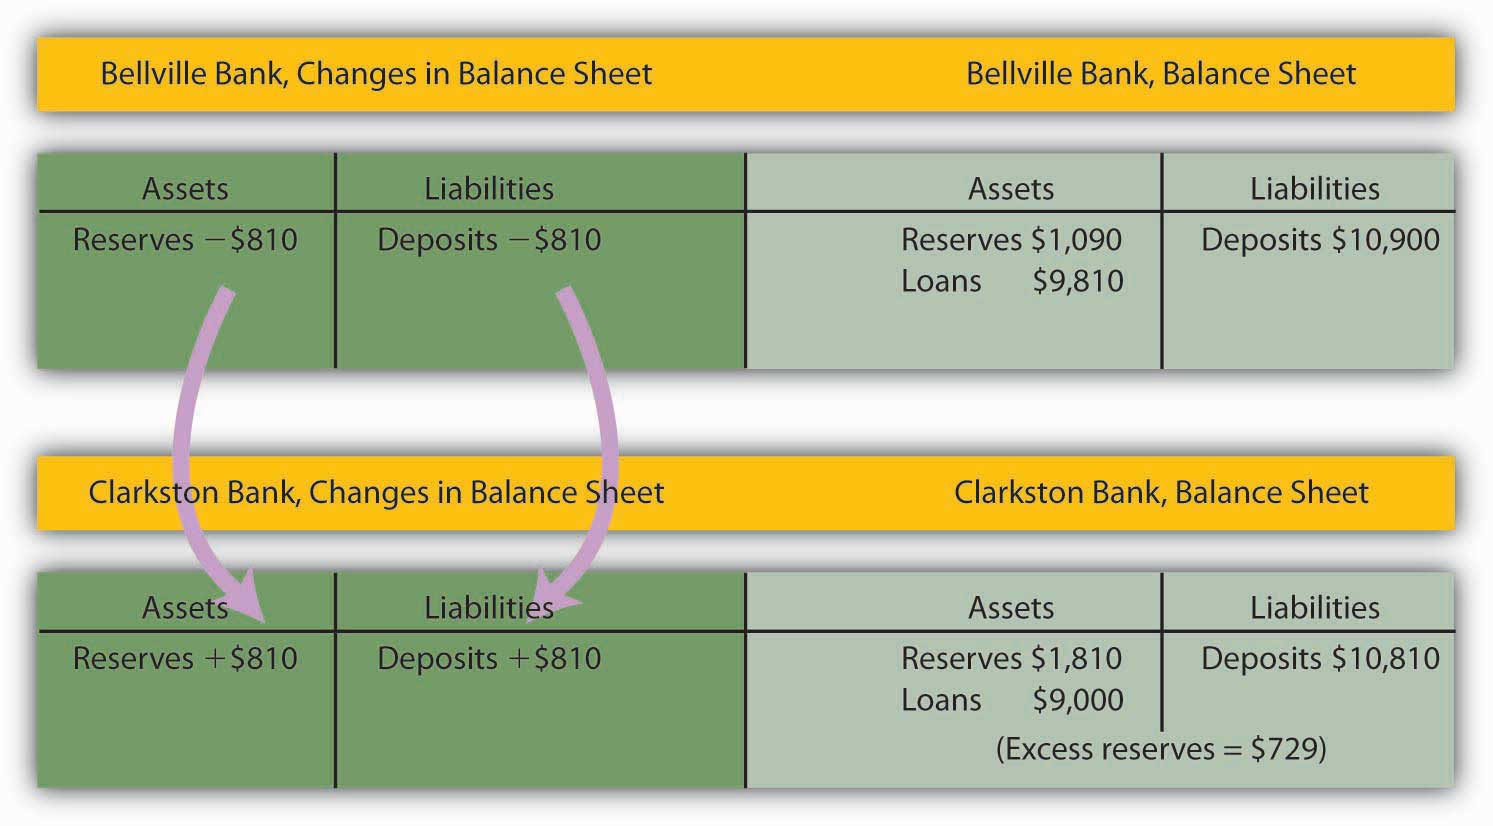 Bellville Bank, Changes in Balance Sheet 2